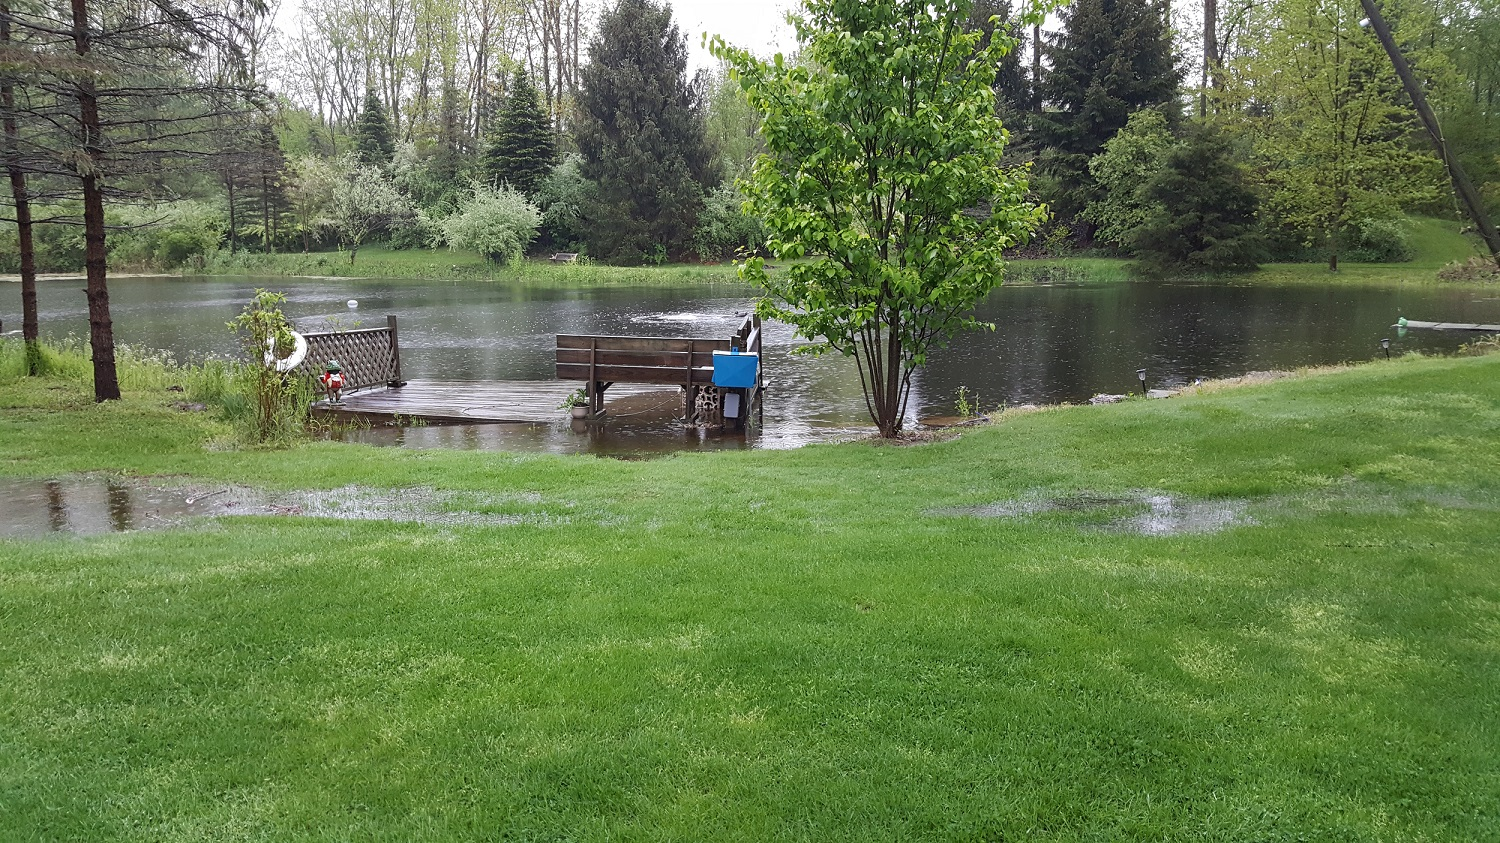 2 Acre Pond Construction : Acre pond pictures to pin on pinterest daddy